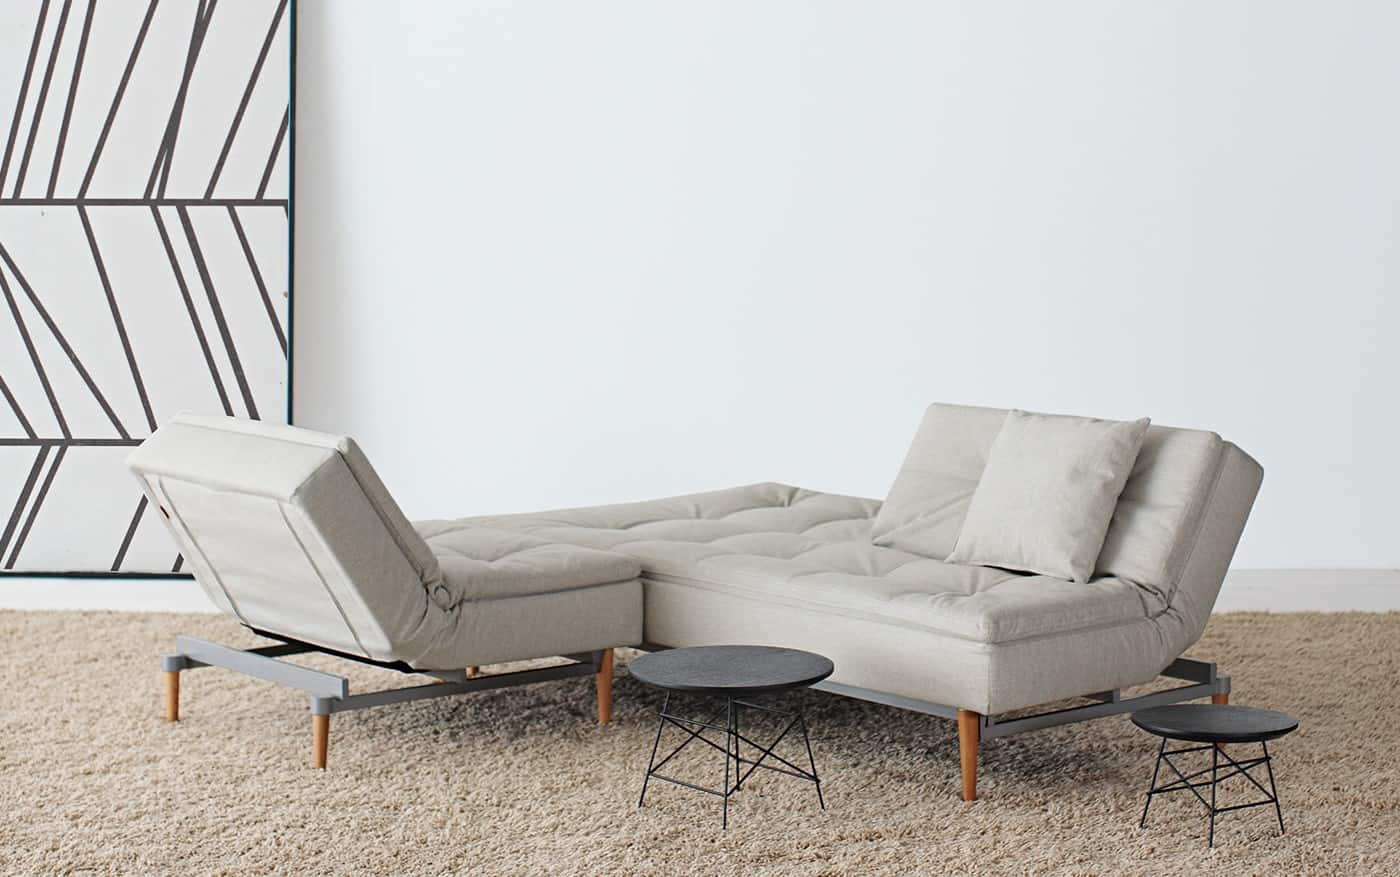 Bettsofa Innovation Schlafsofa Dublexo - Innovation Schlafsofas